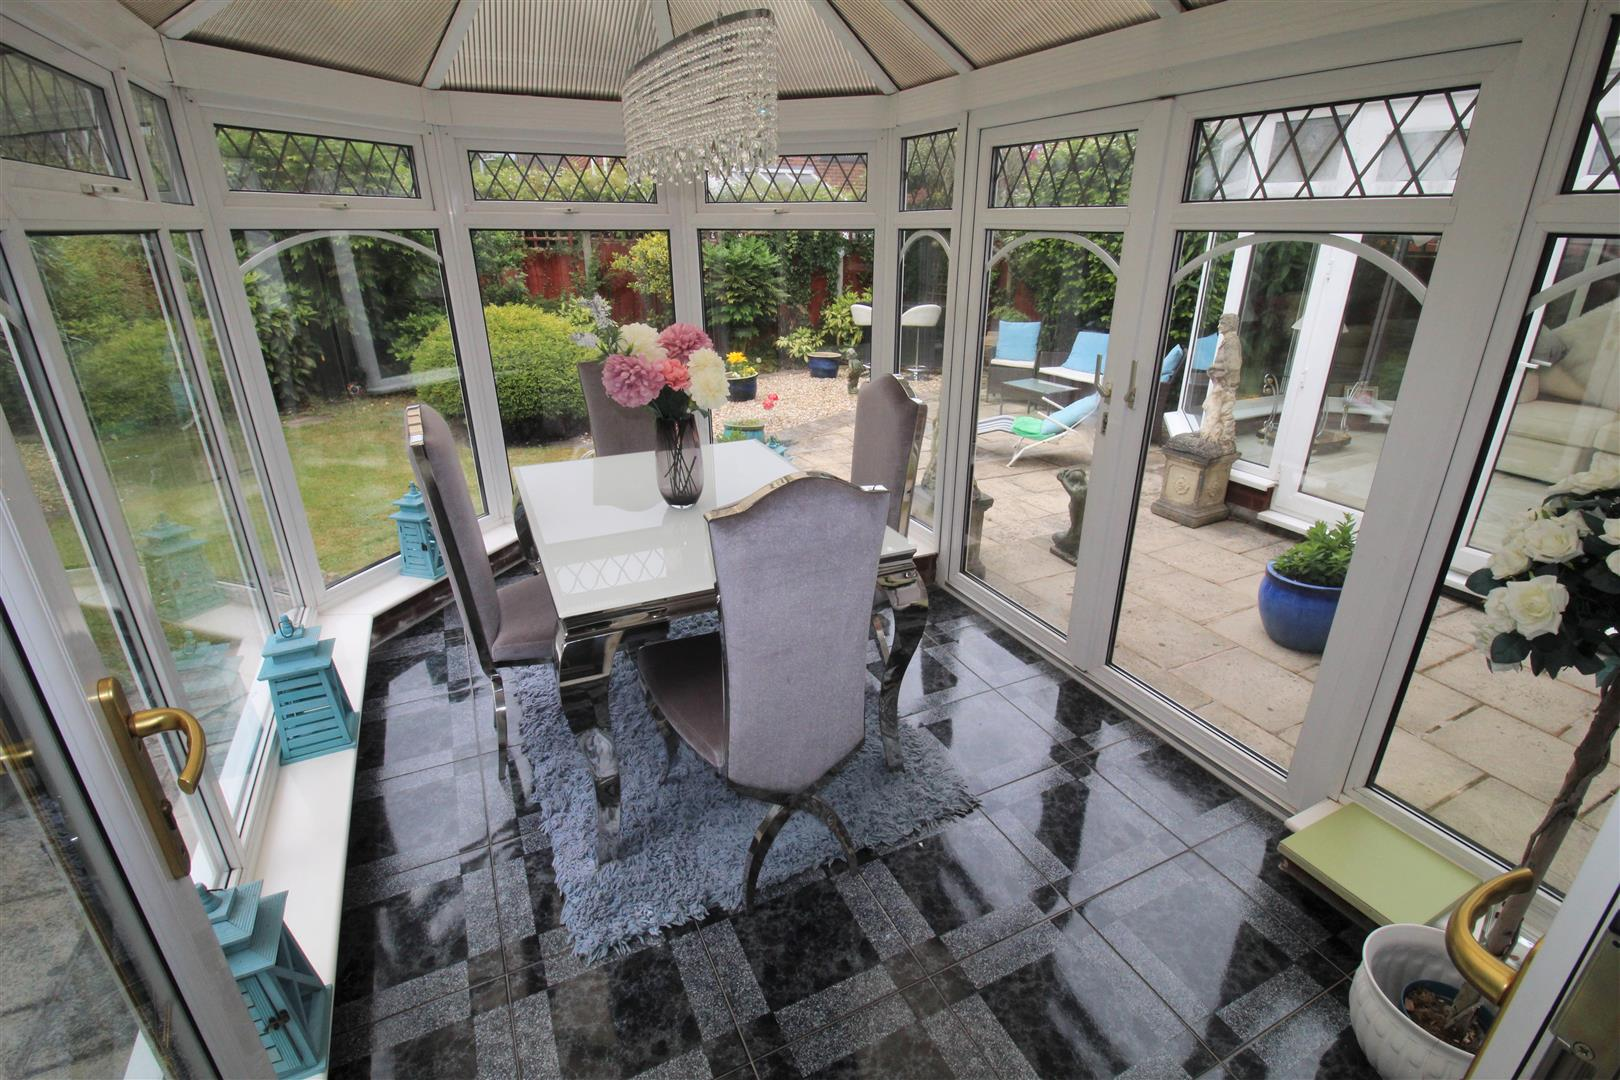 4 Bedrooms, House - Semi-Detached, Monmouth Drive, Liverpool